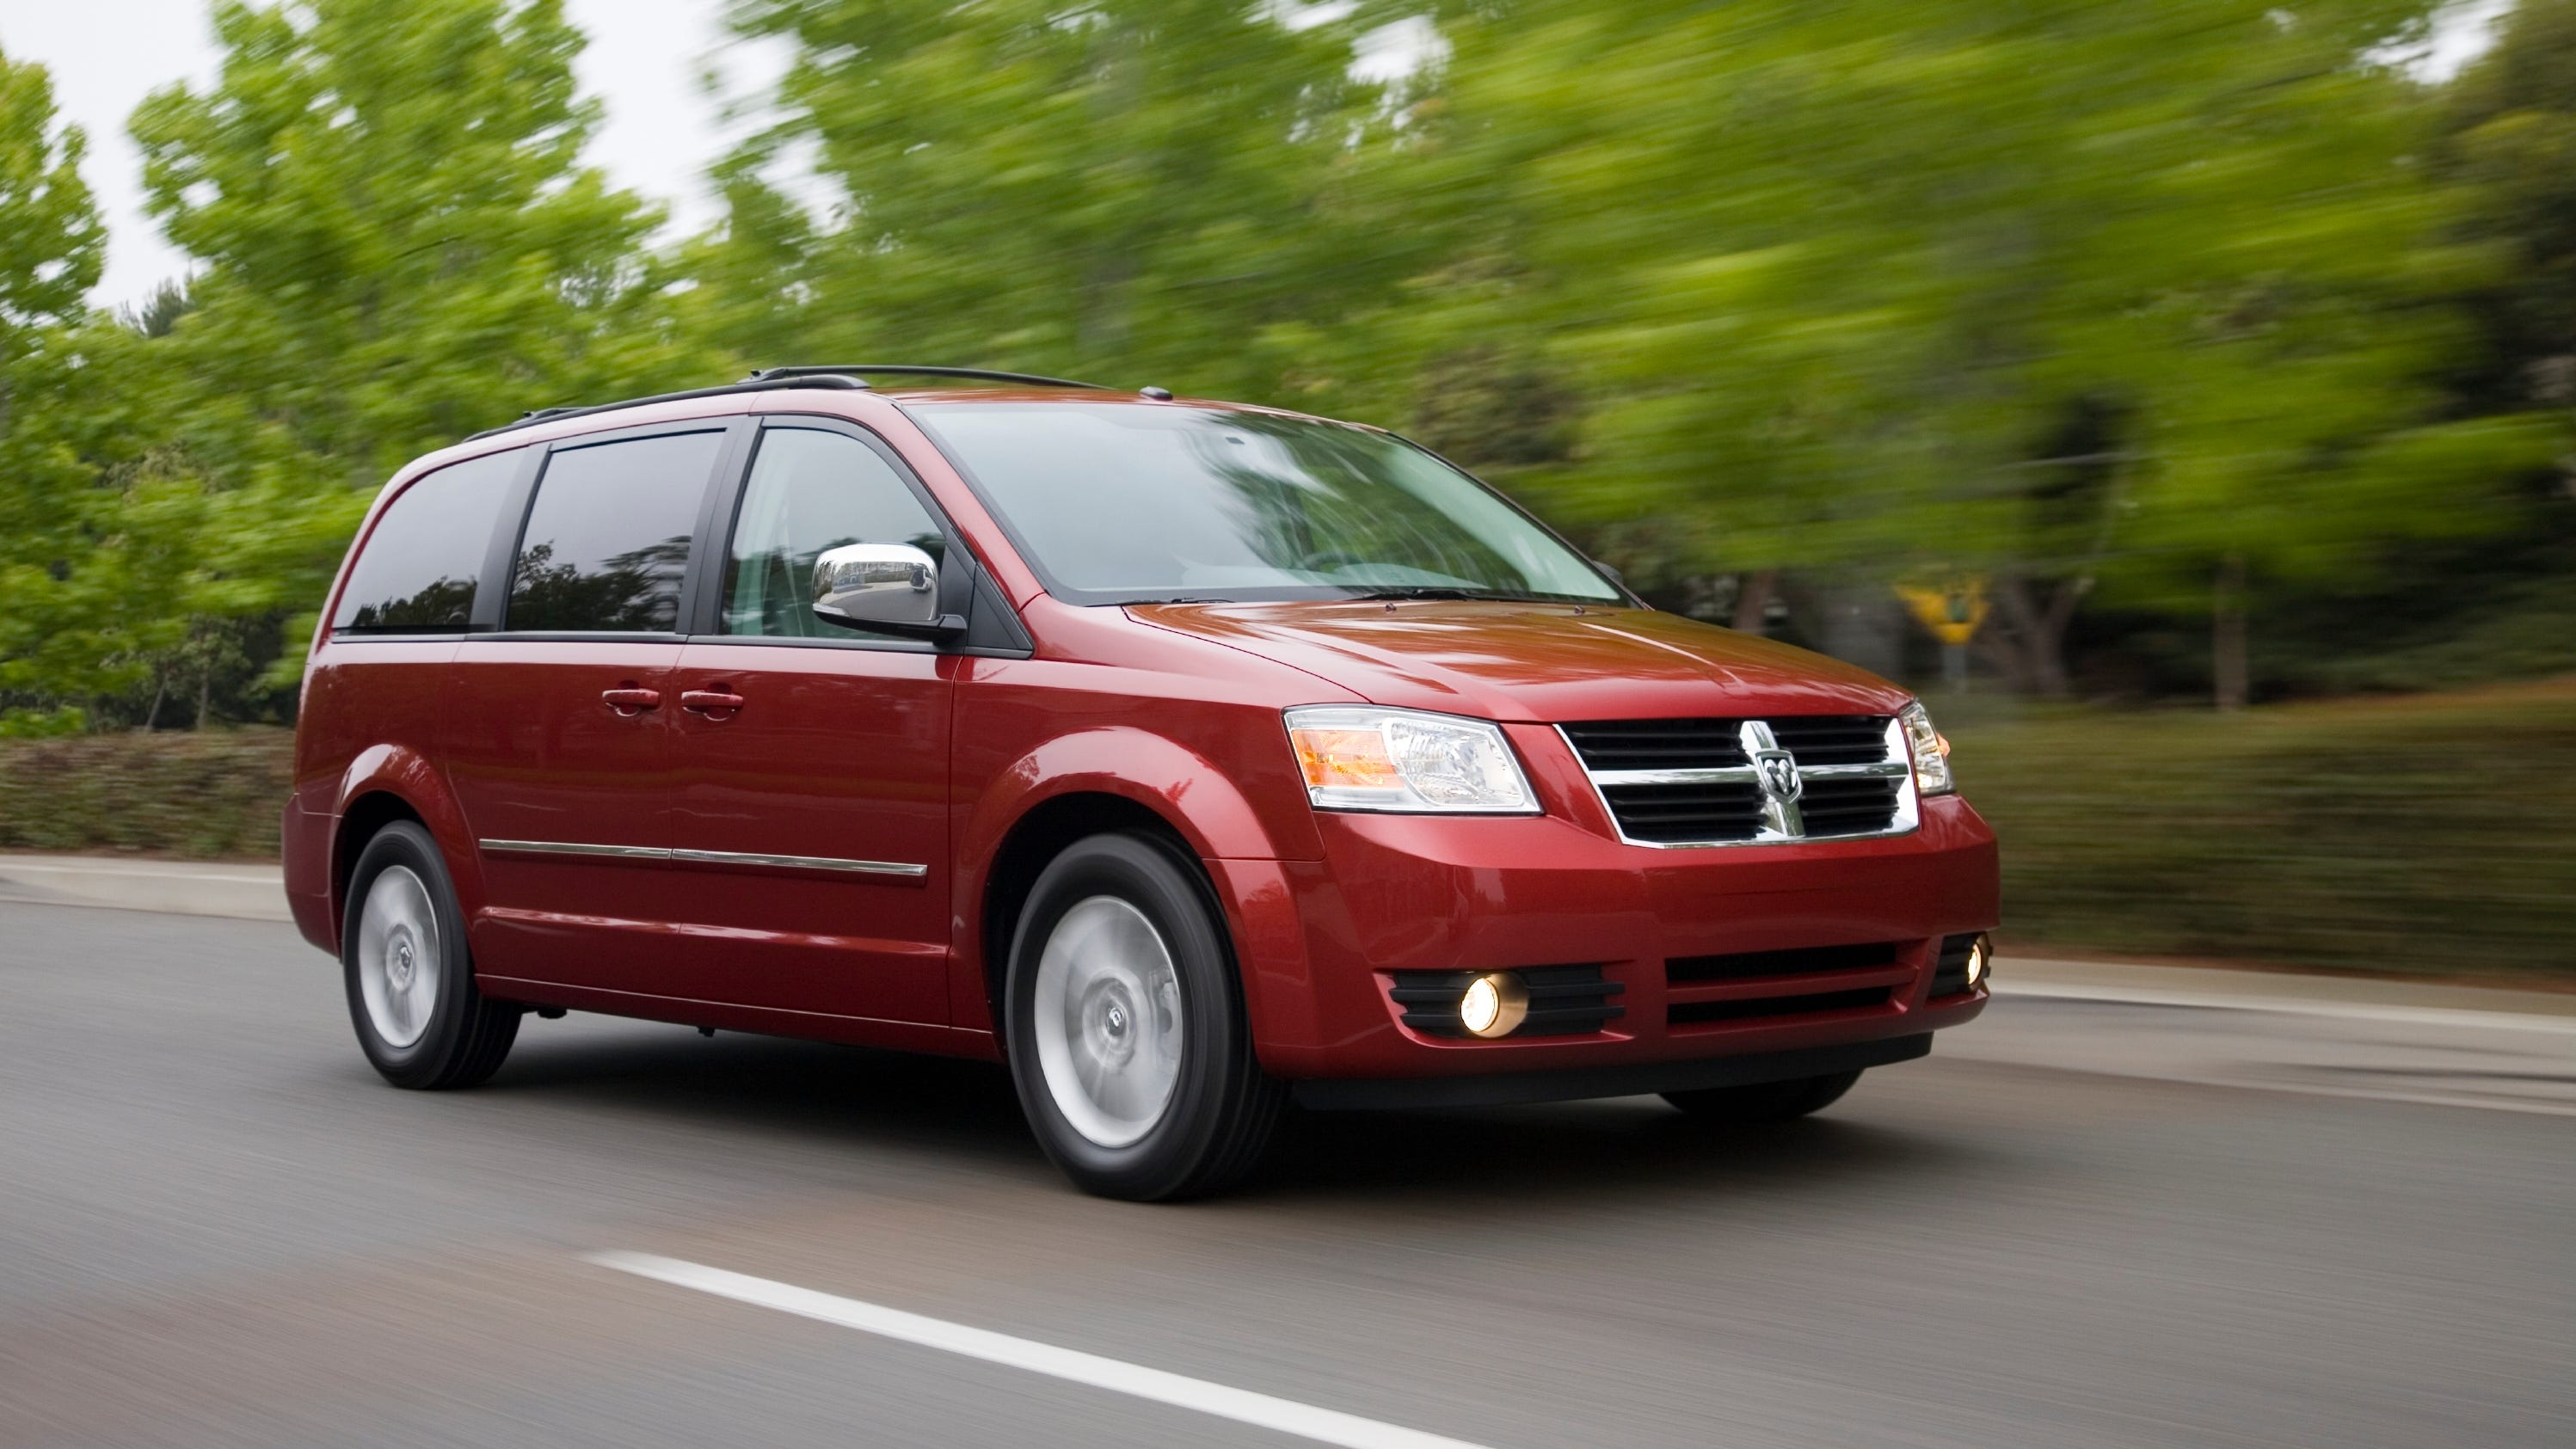 Fca Recalls 1 2m Dodge Chrysler Vehicles Pieces Can Be Projectiles